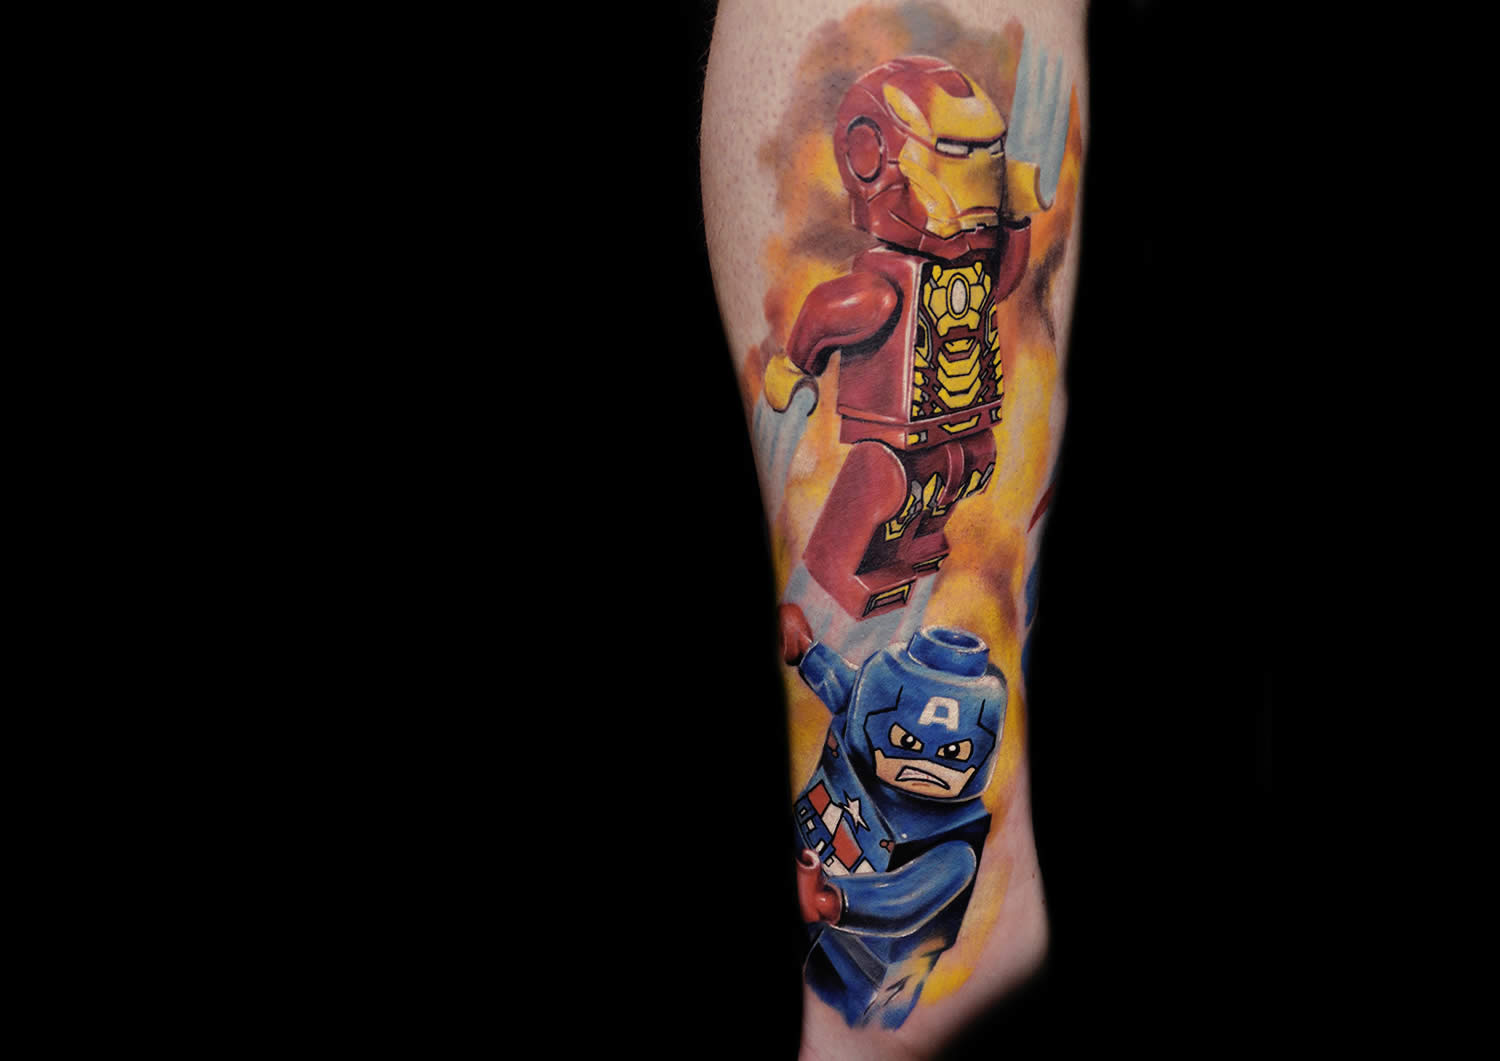 iron man and captain america lego minifigure tattoos